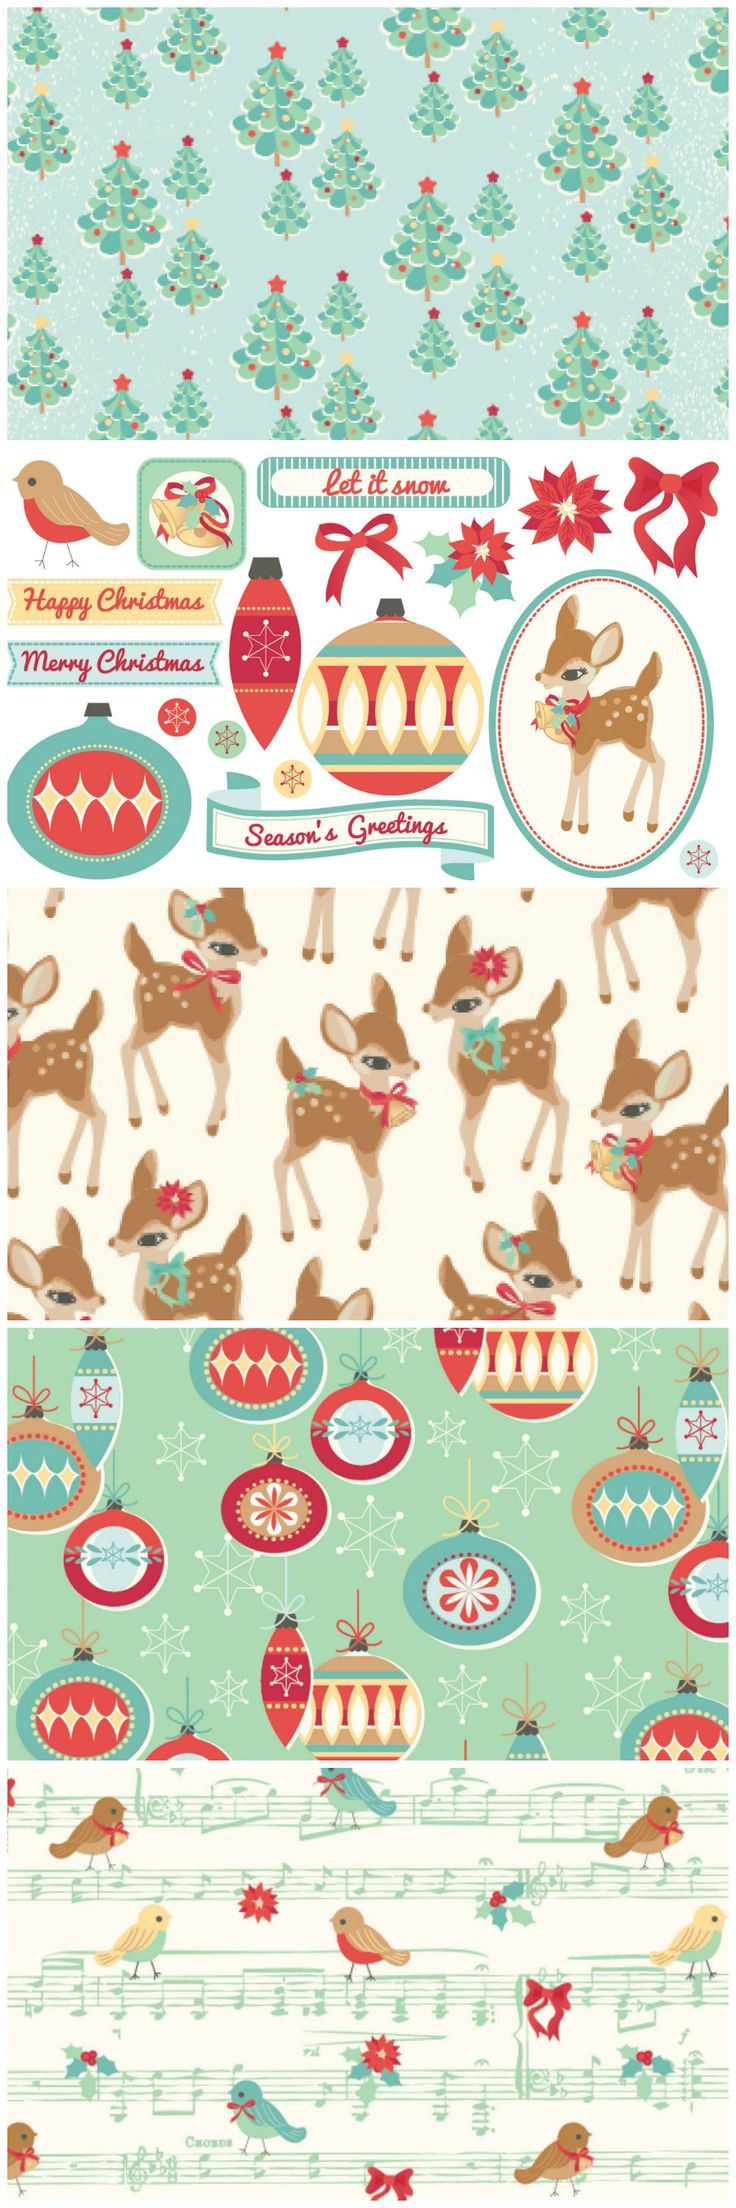 Paper christmas decorations to print - Make Beautiful Retro Christmas Cards Using Our Free Digital Papers More